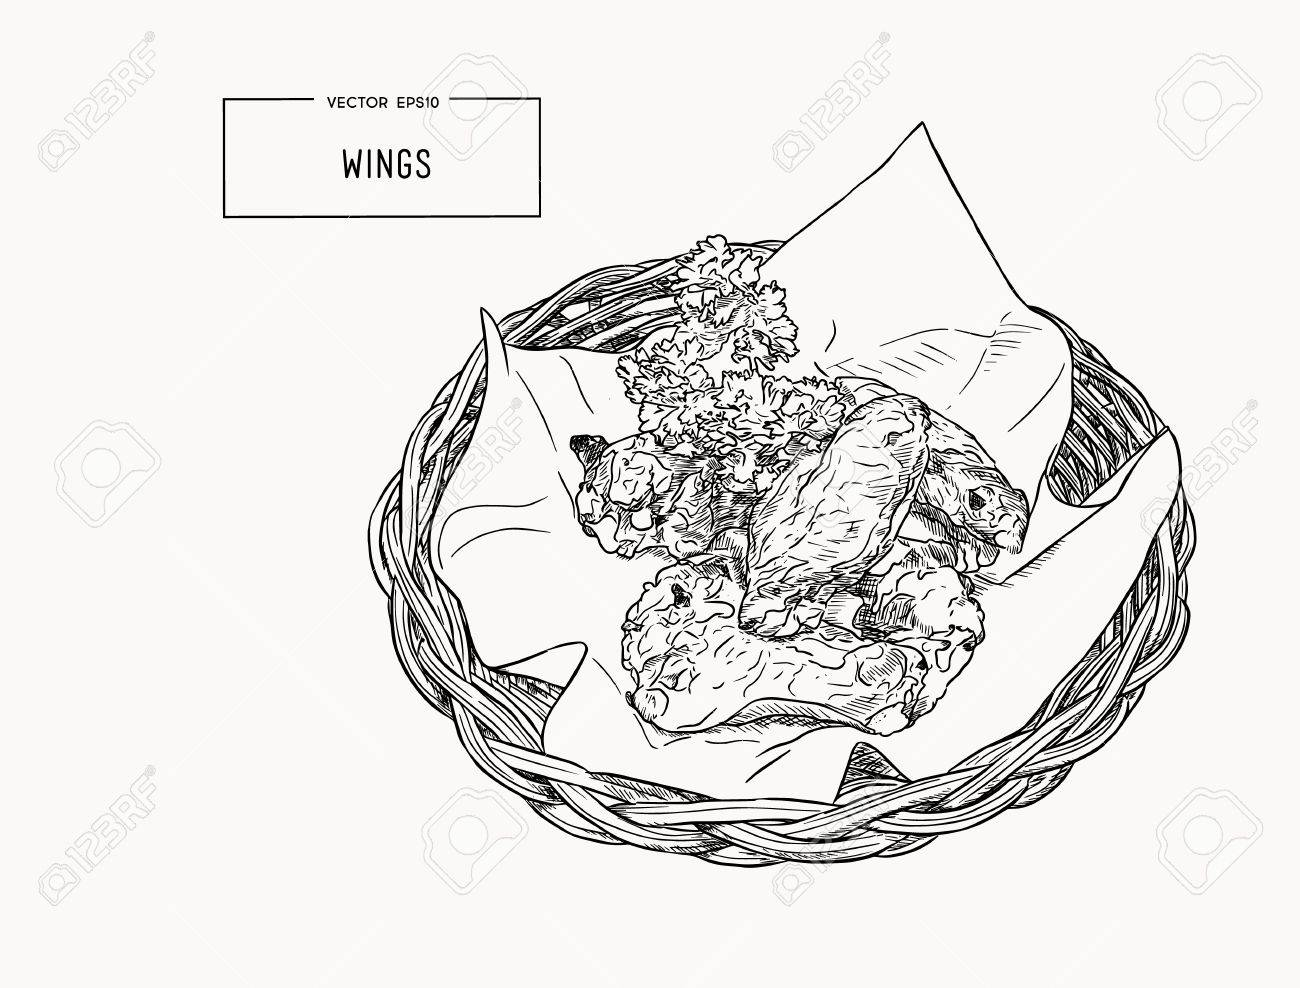 hight resolution of hand drawn sketch buffalo chicken wings vector black and white vintage illustration isolated object